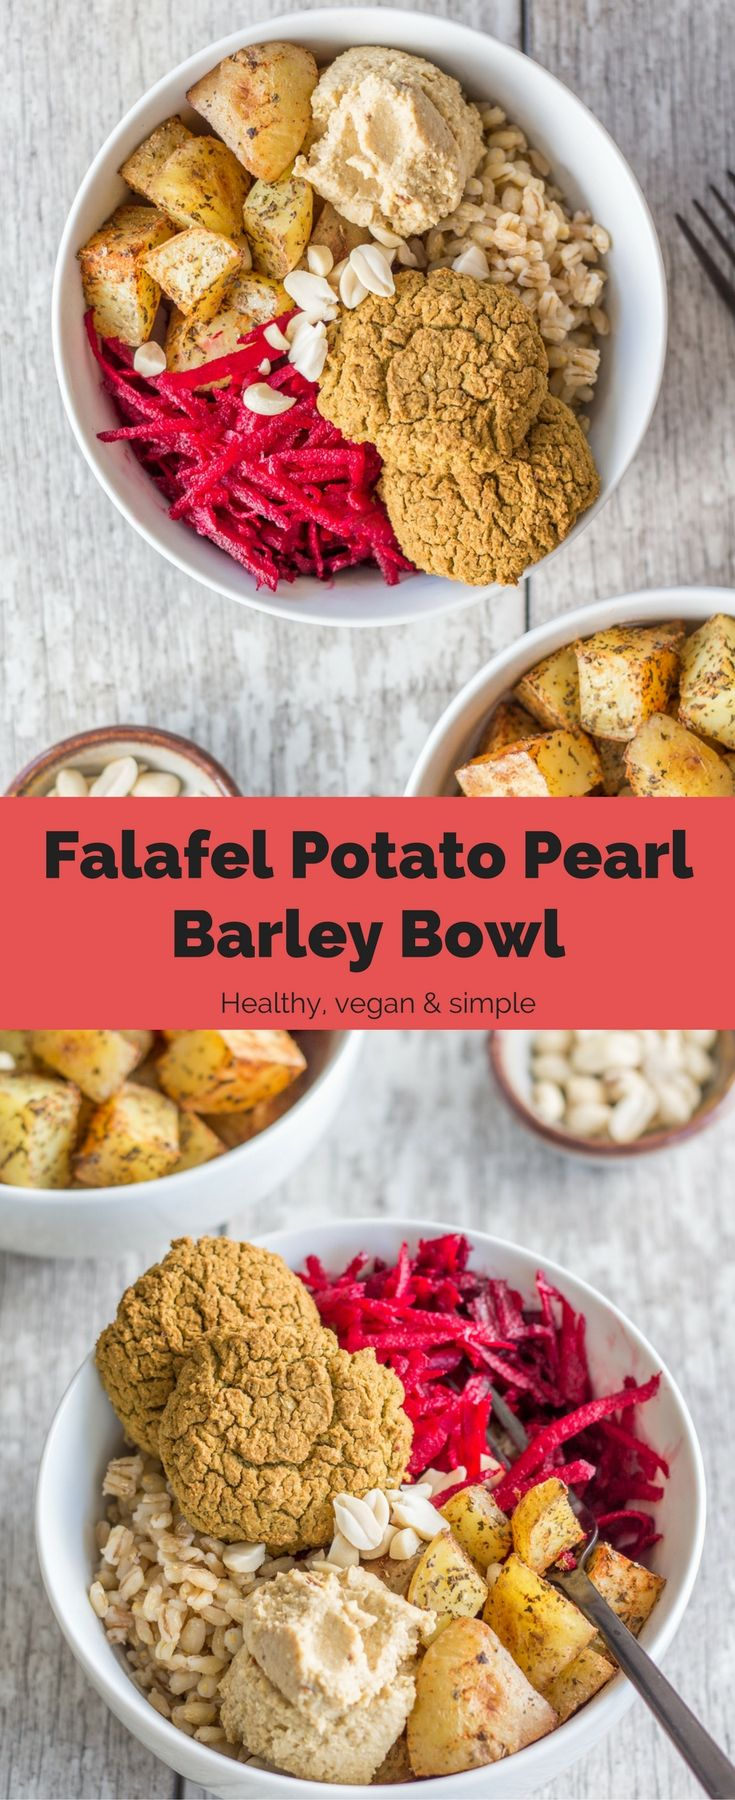 This Falafel Potato Pearl Barley Bowl is simple, healthy, perfect for meal prepping, and filling. A delicious, vegan dinner. #vegan #dinner #recipes #healthy